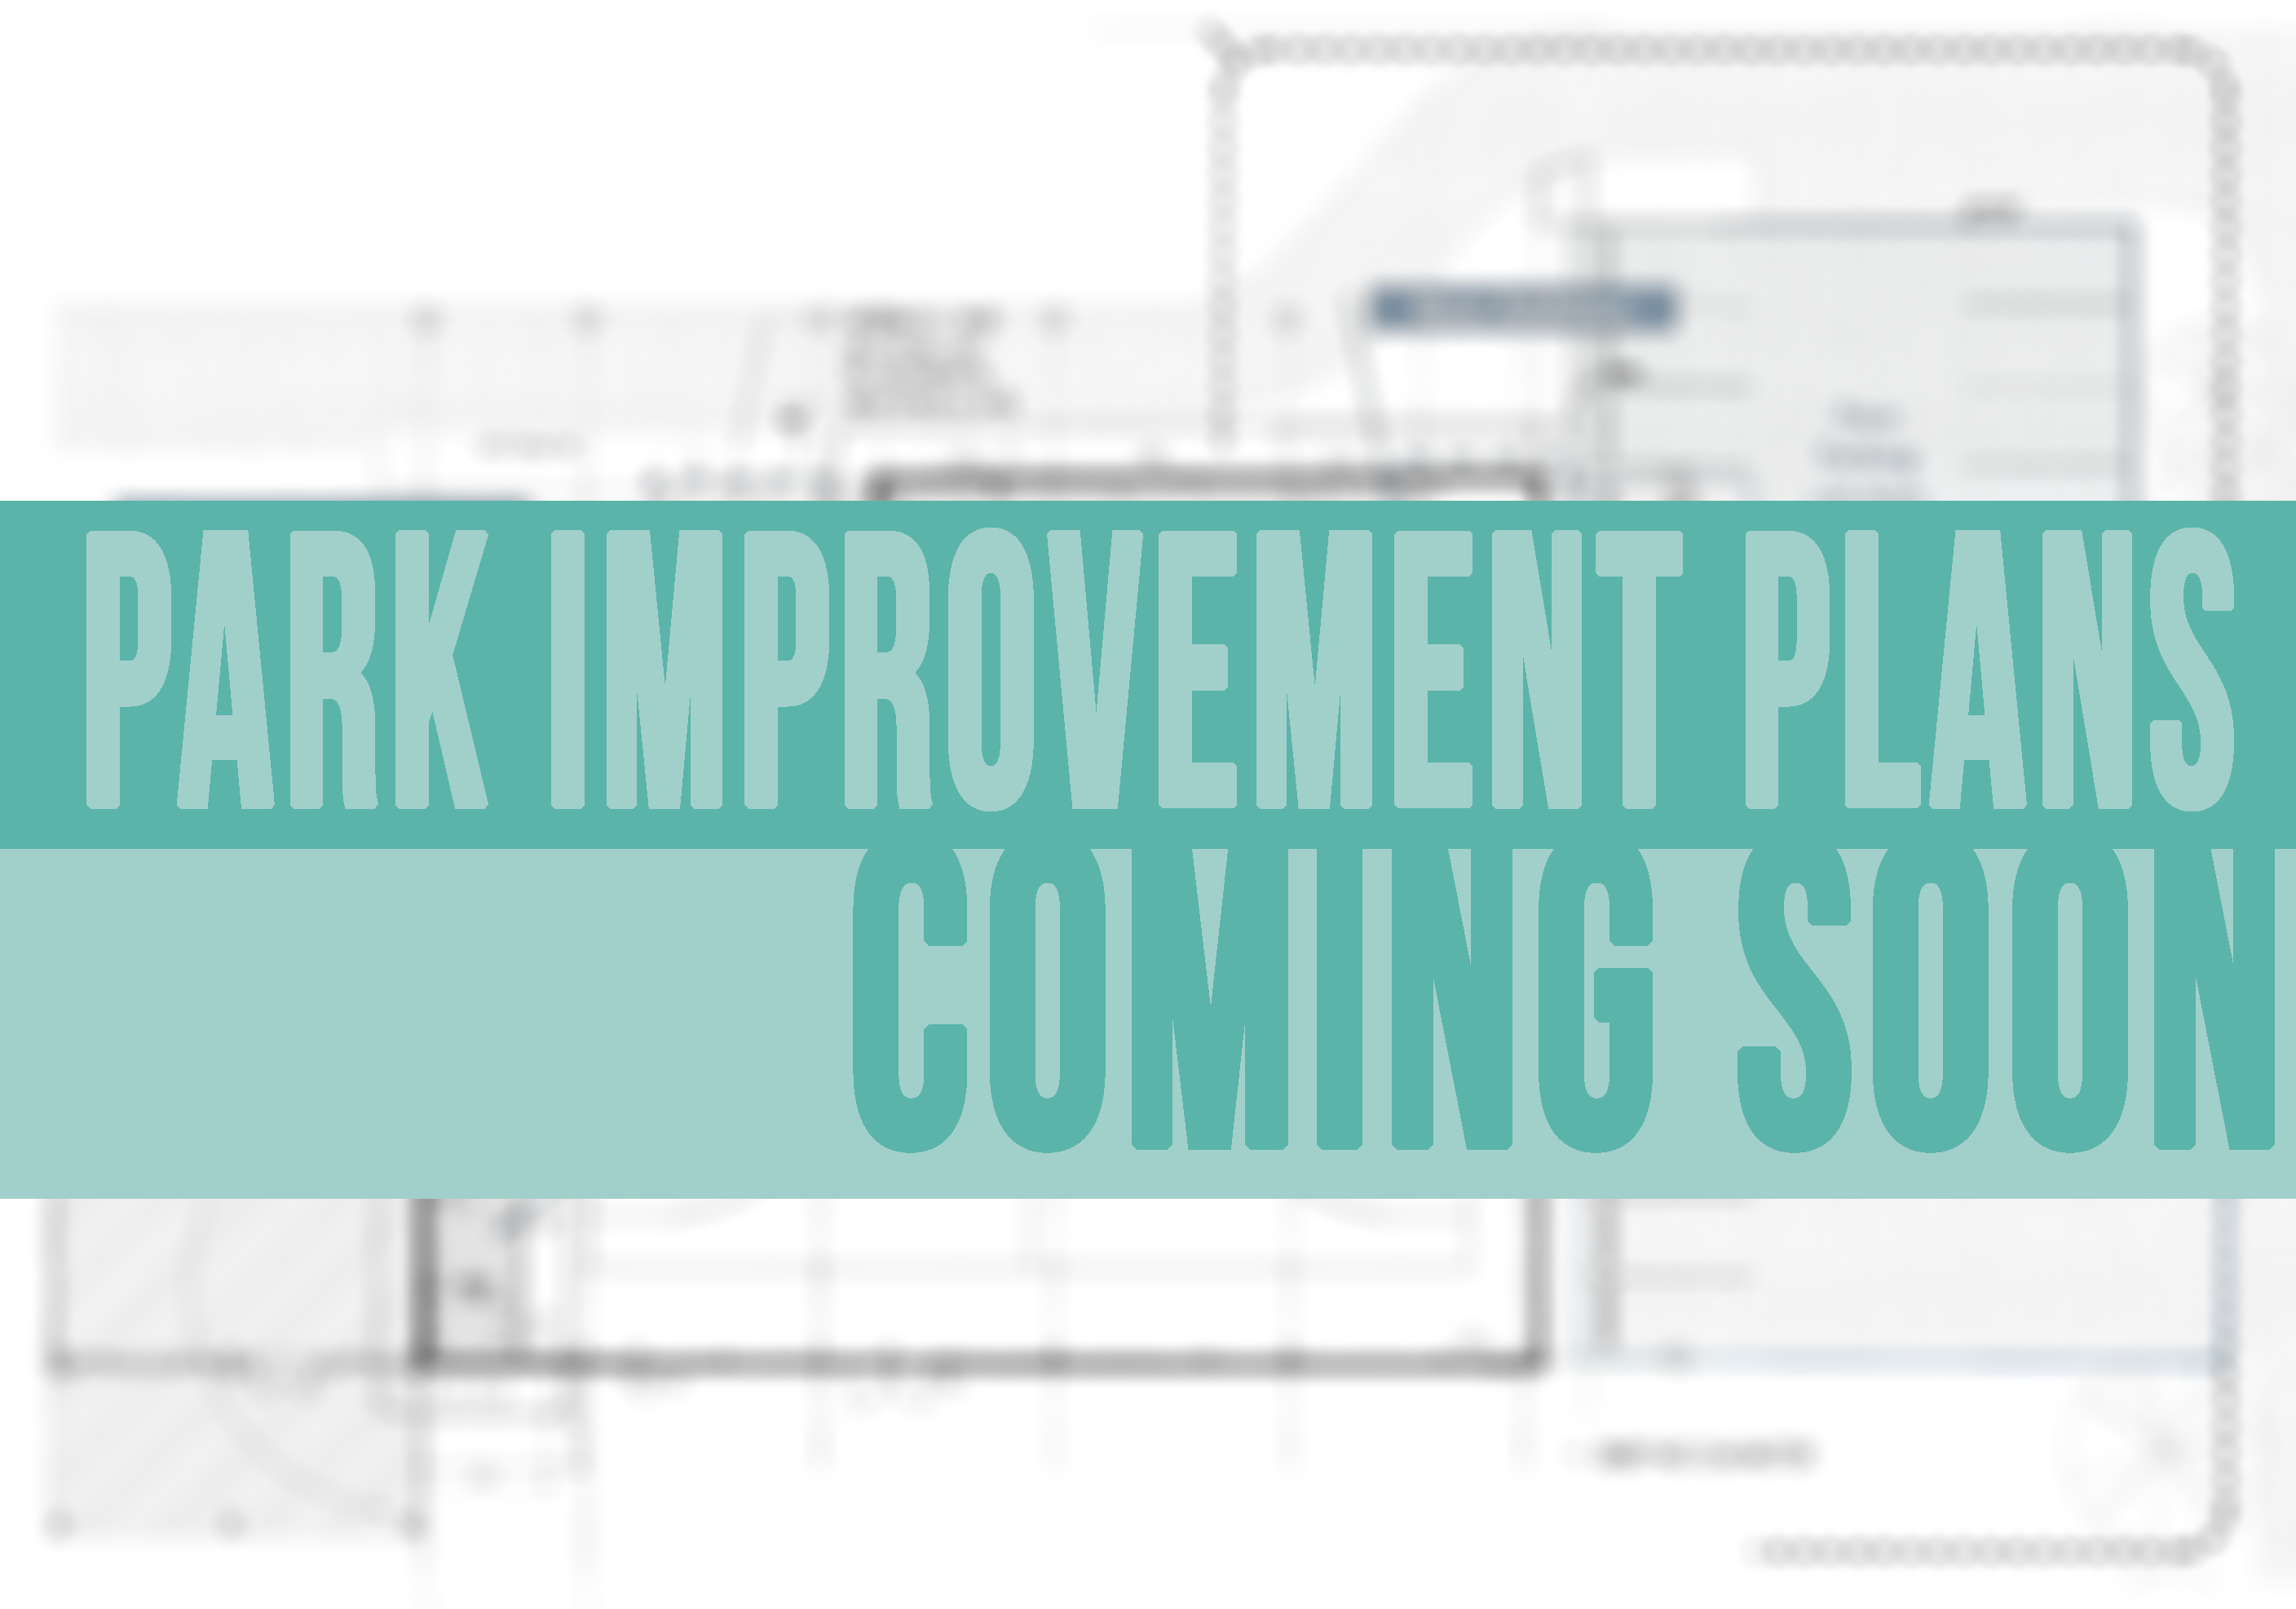 Park Plans coming soon